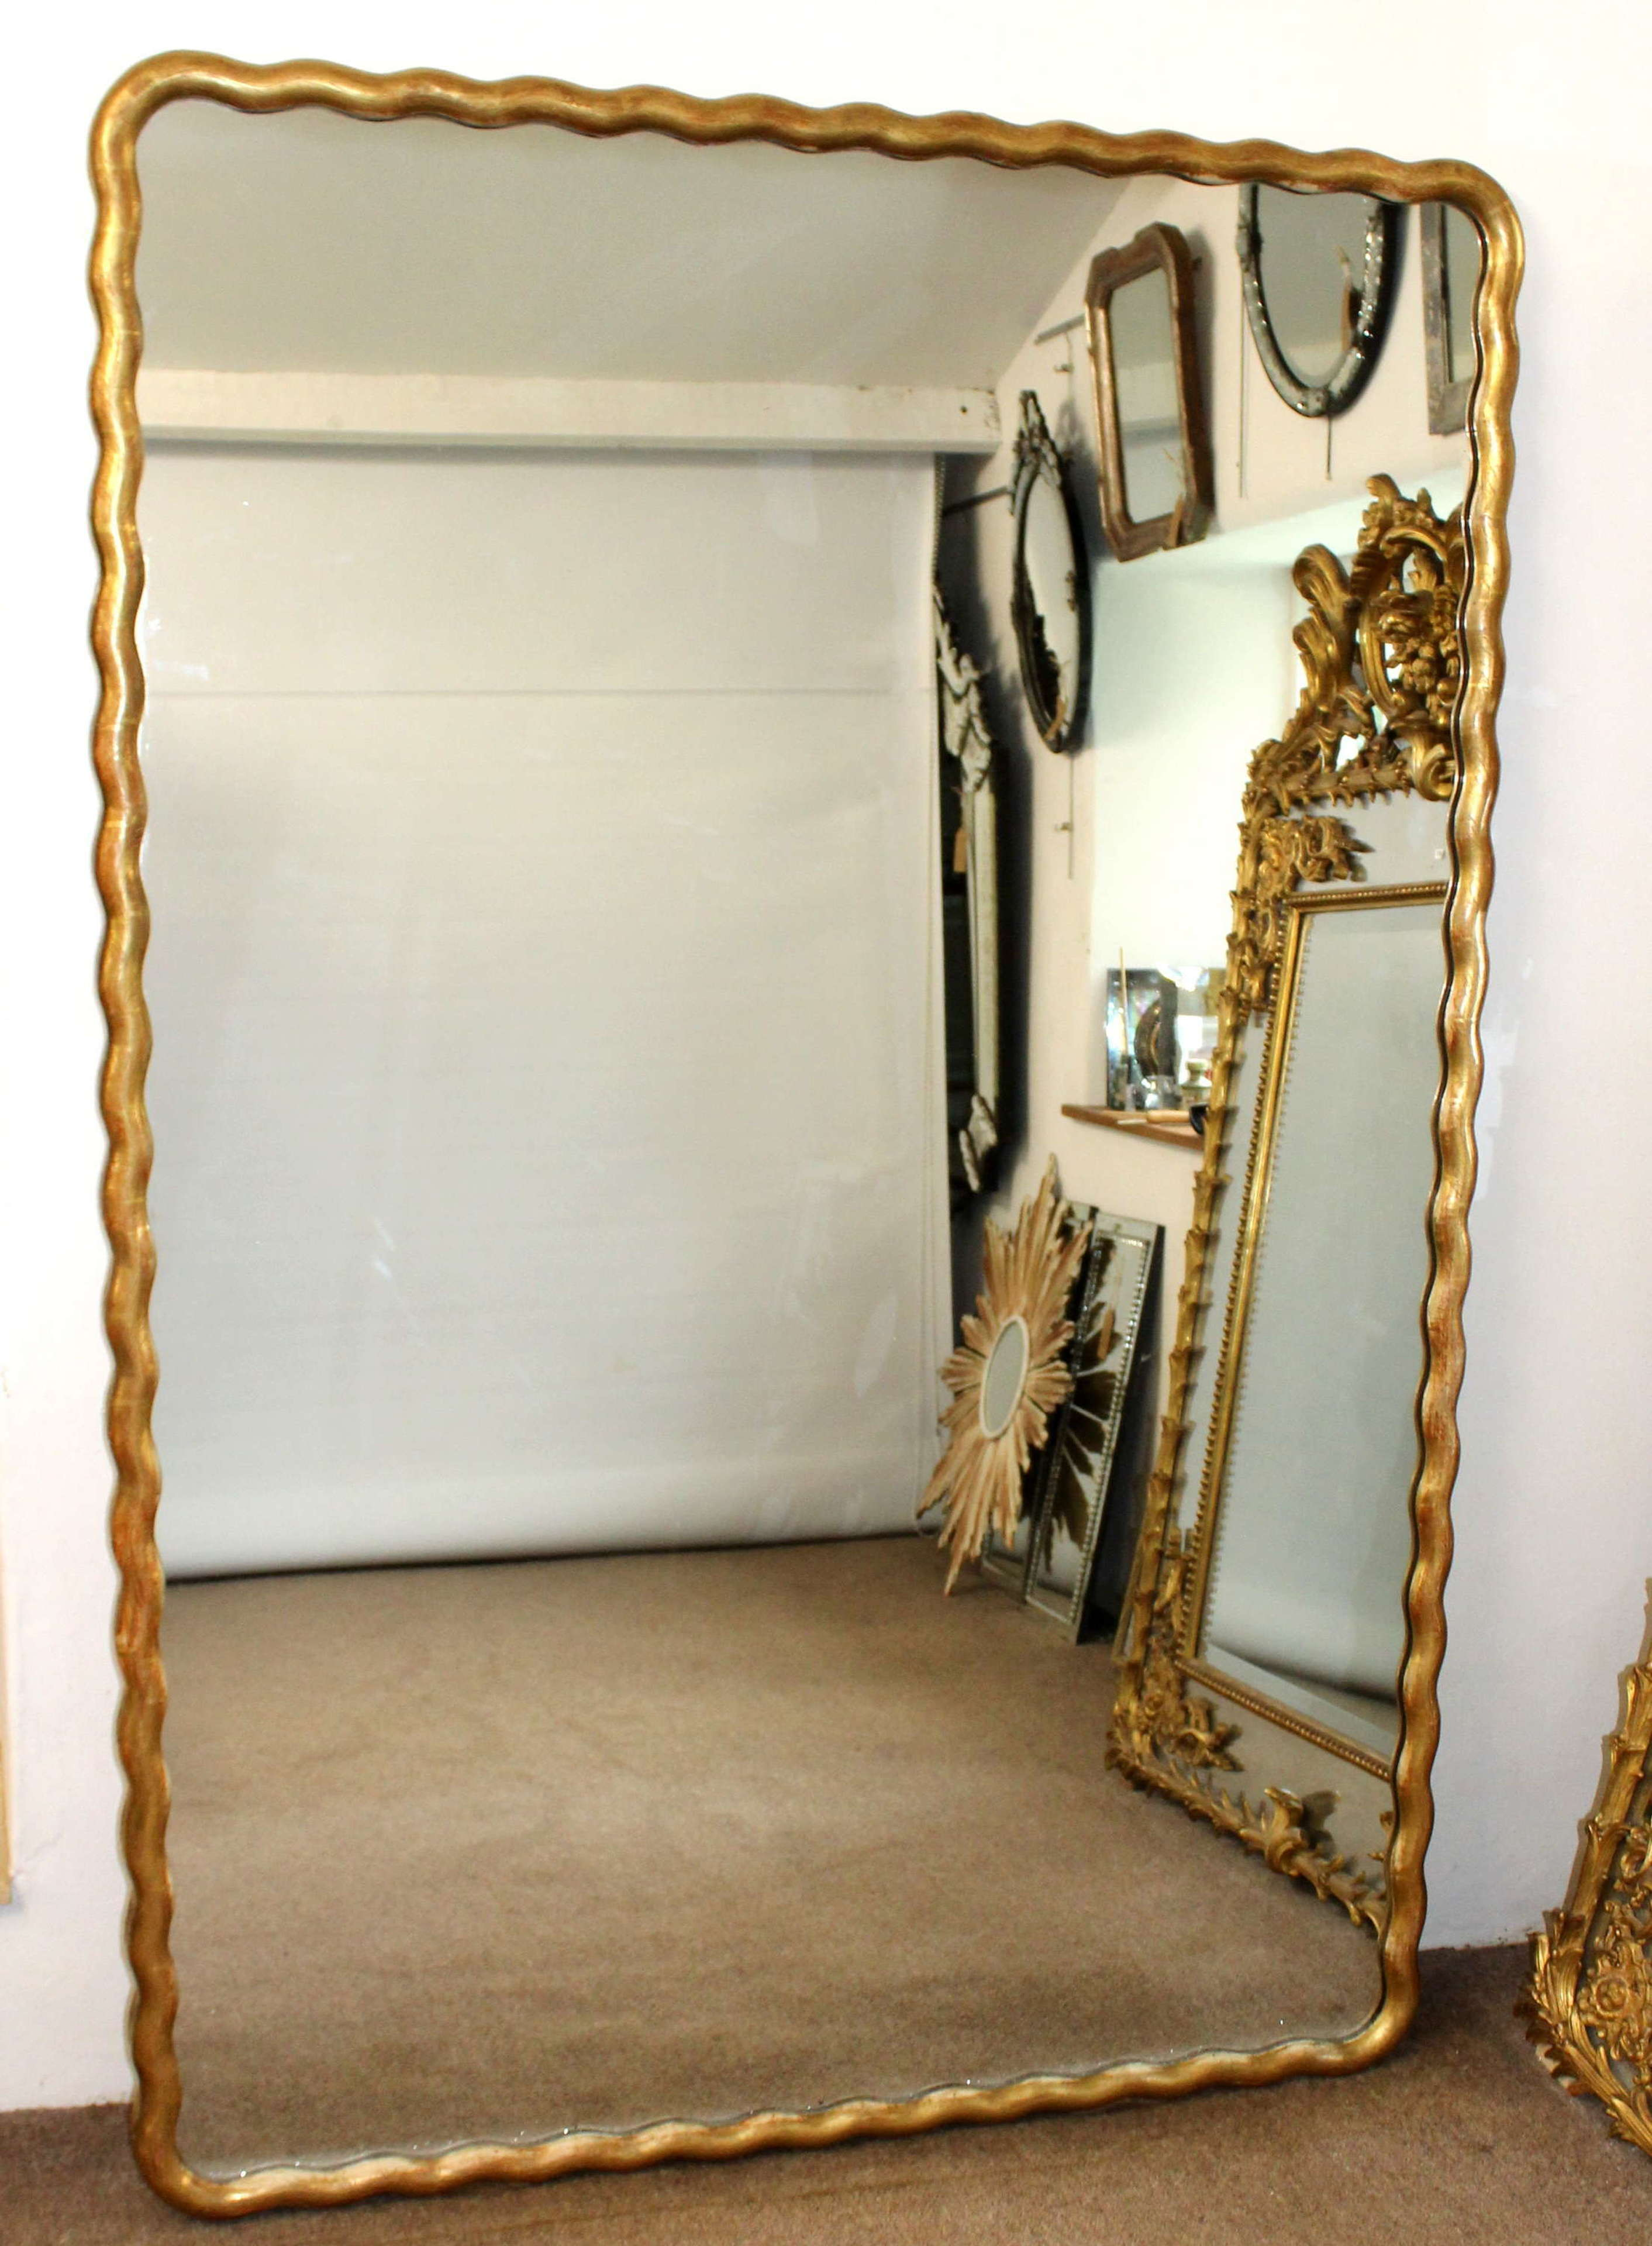 Huge antique French gilt mirror with undulating frame